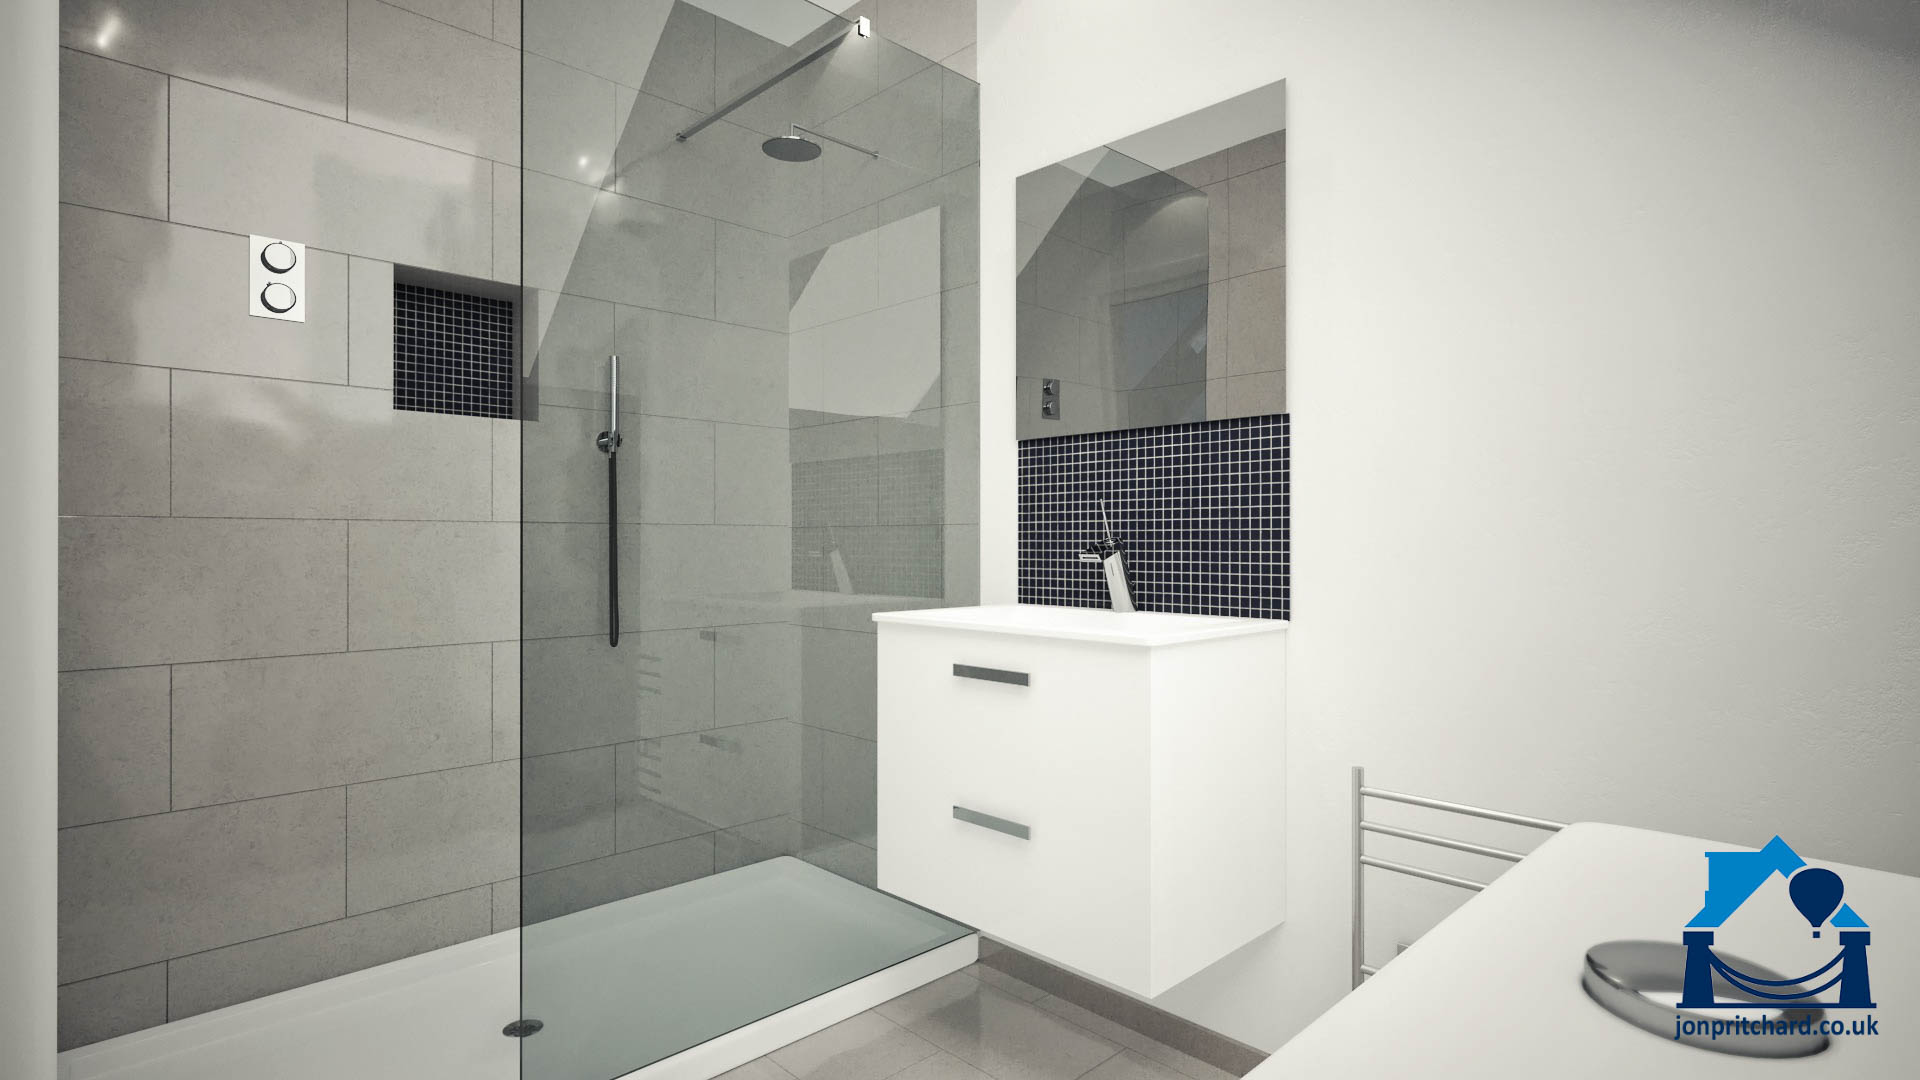 Image of a chic loft shower room featurig double width shower, fixed shower screen in light smoked glass, floading vanity and colours in white, light and dark greys